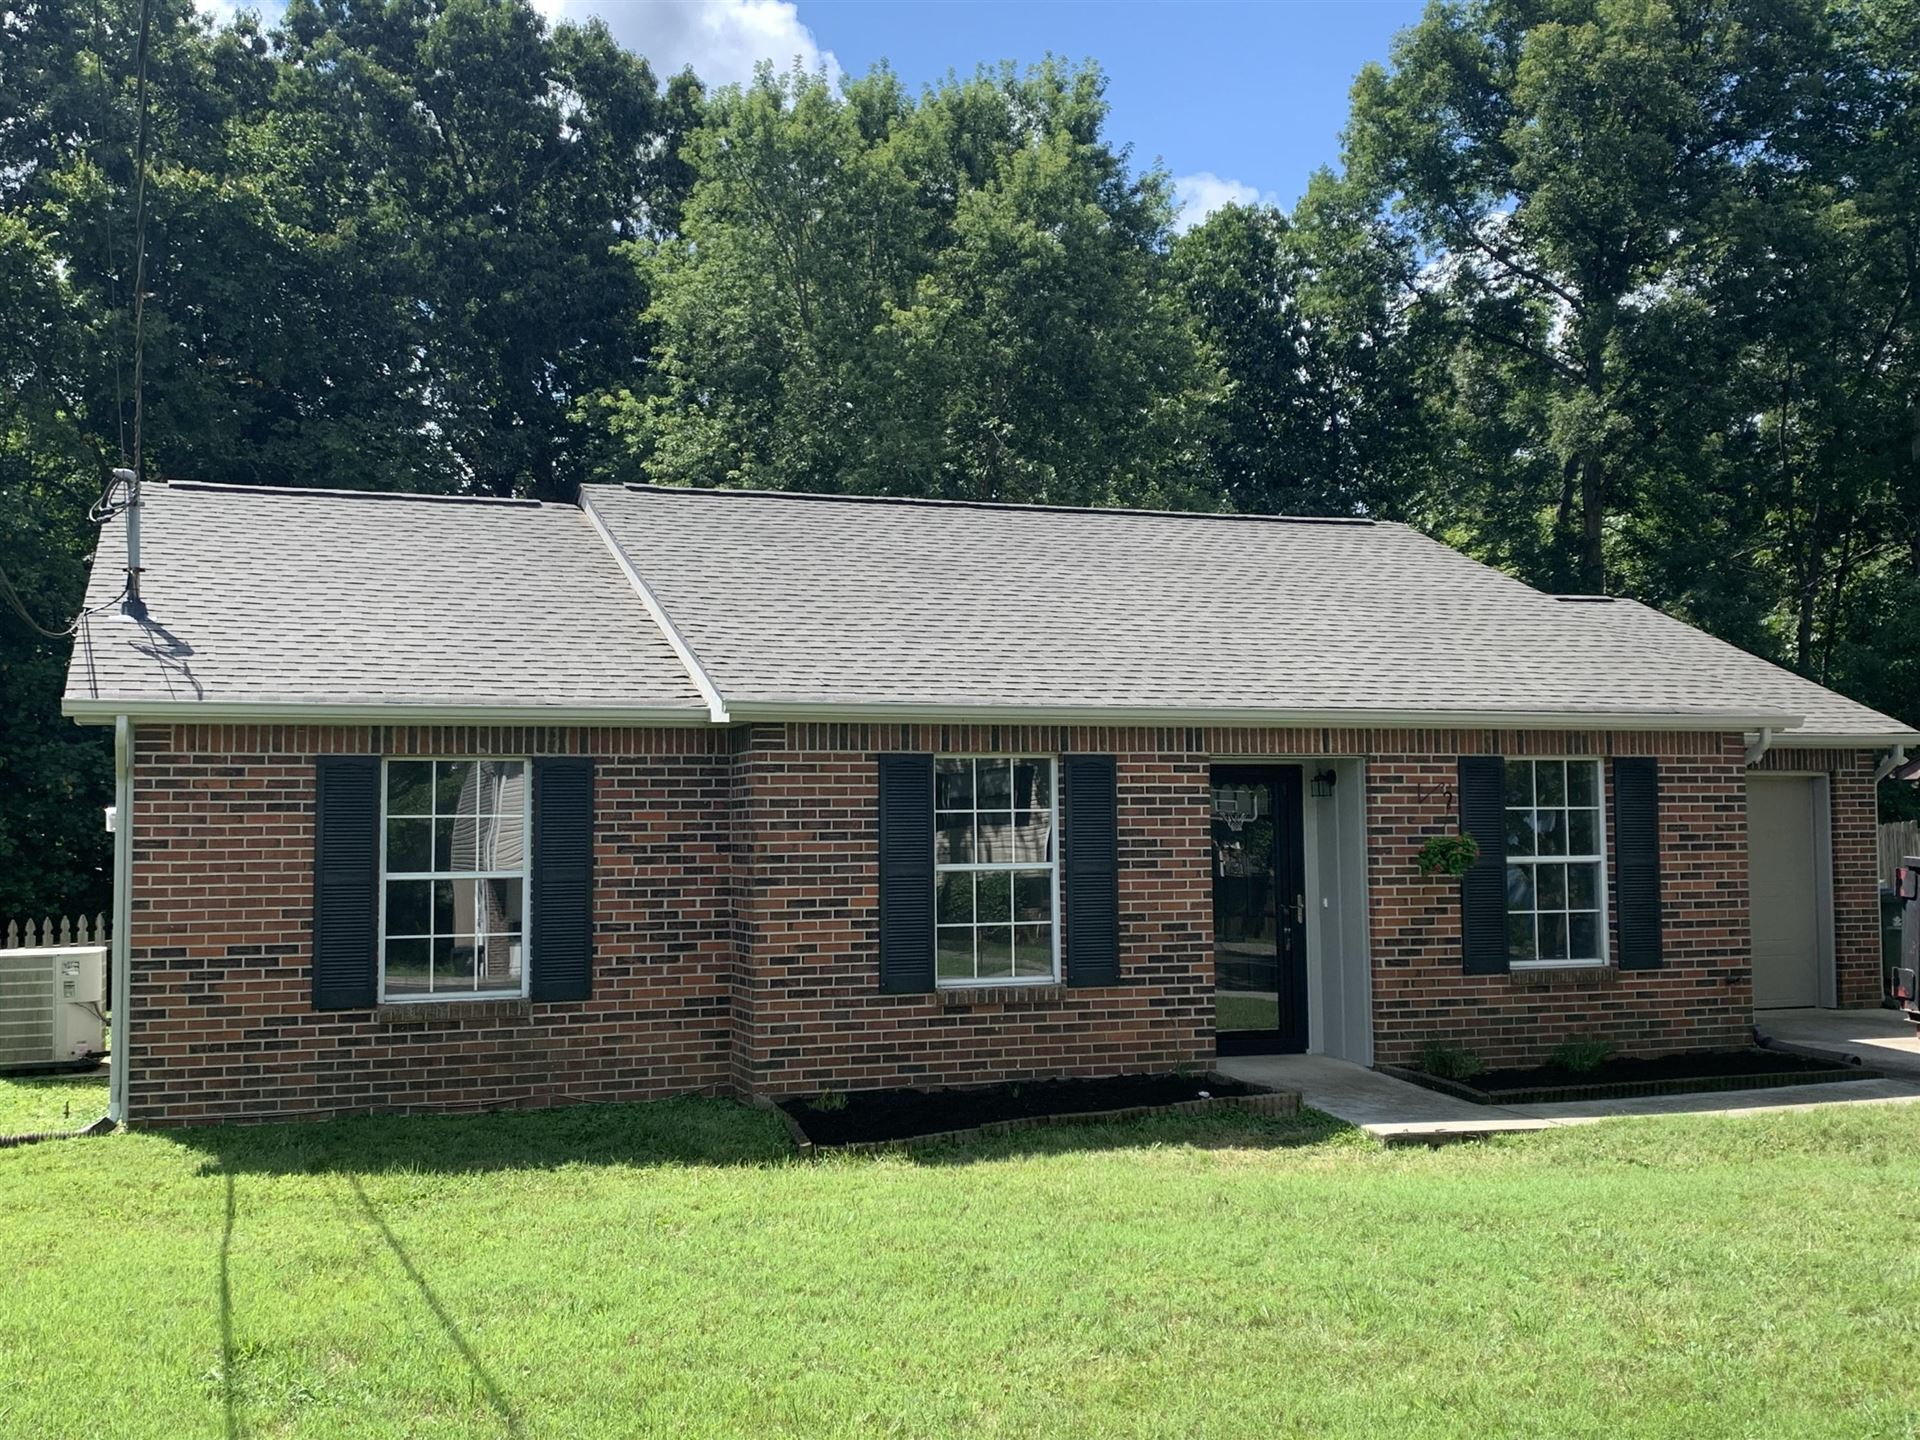 Photo of 1628 Sundrop Drive, Knoxville, TN 37921 (MLS # 1164845)